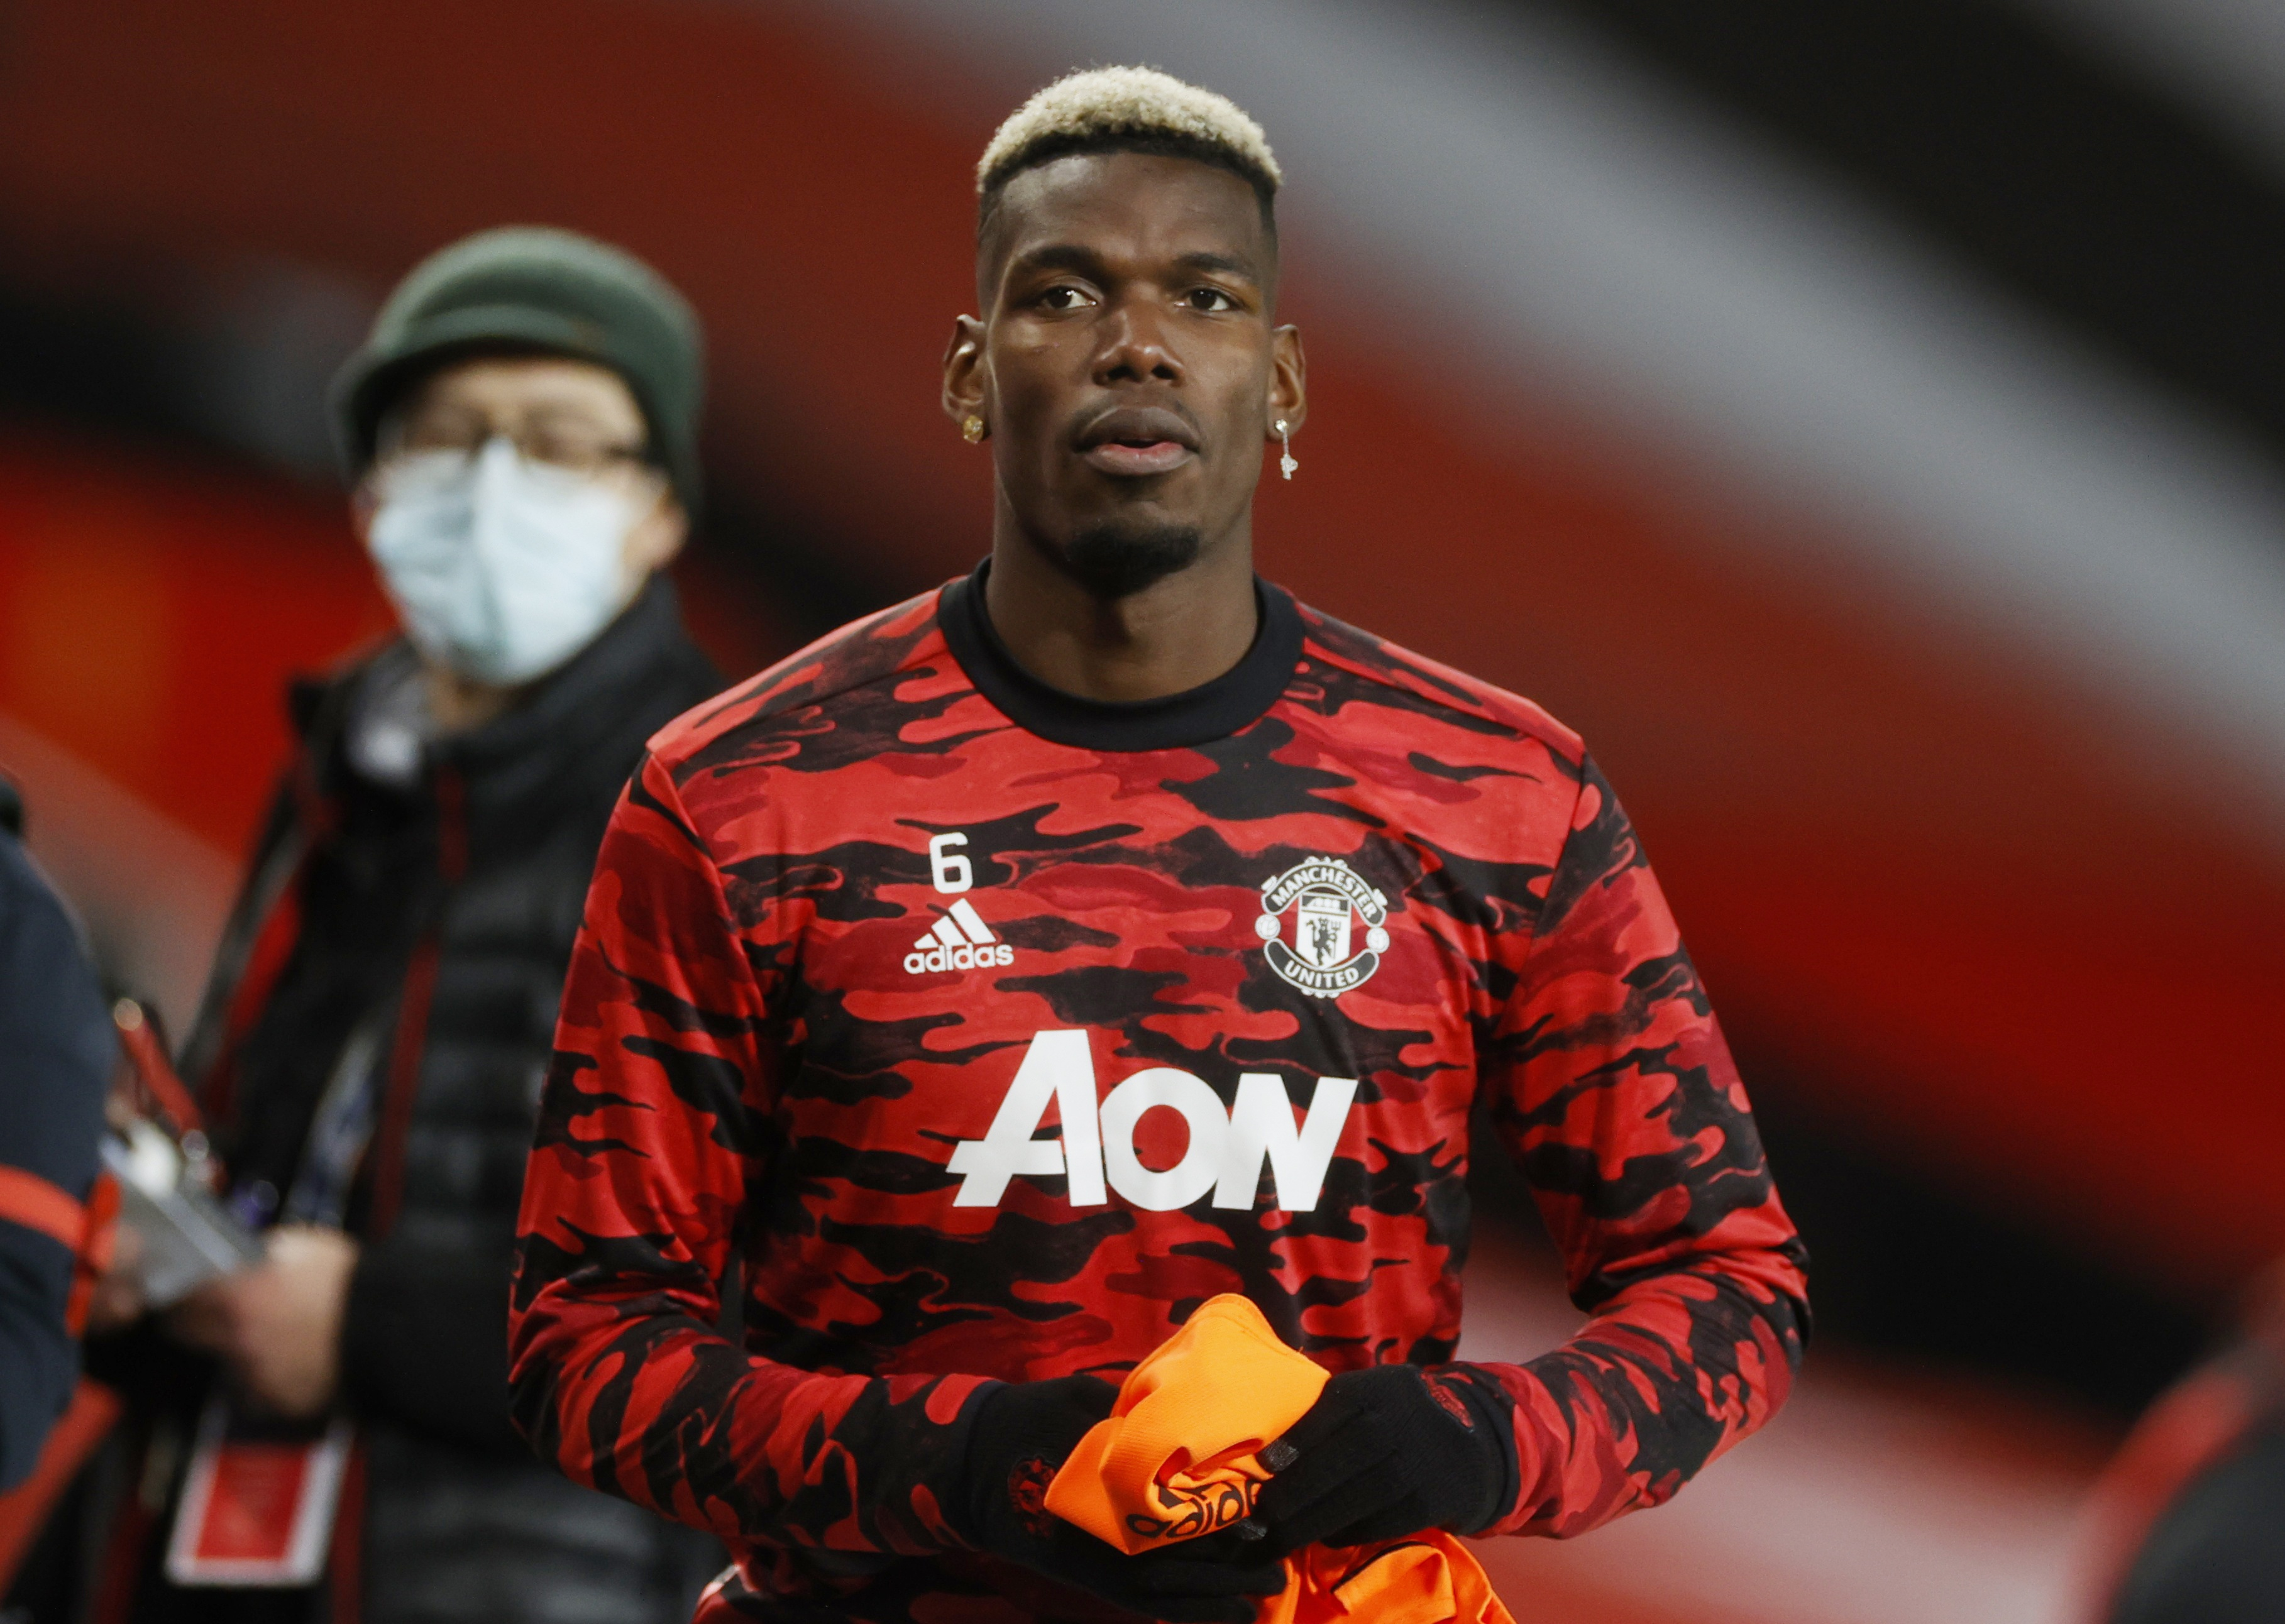 derby Manchester anh 4